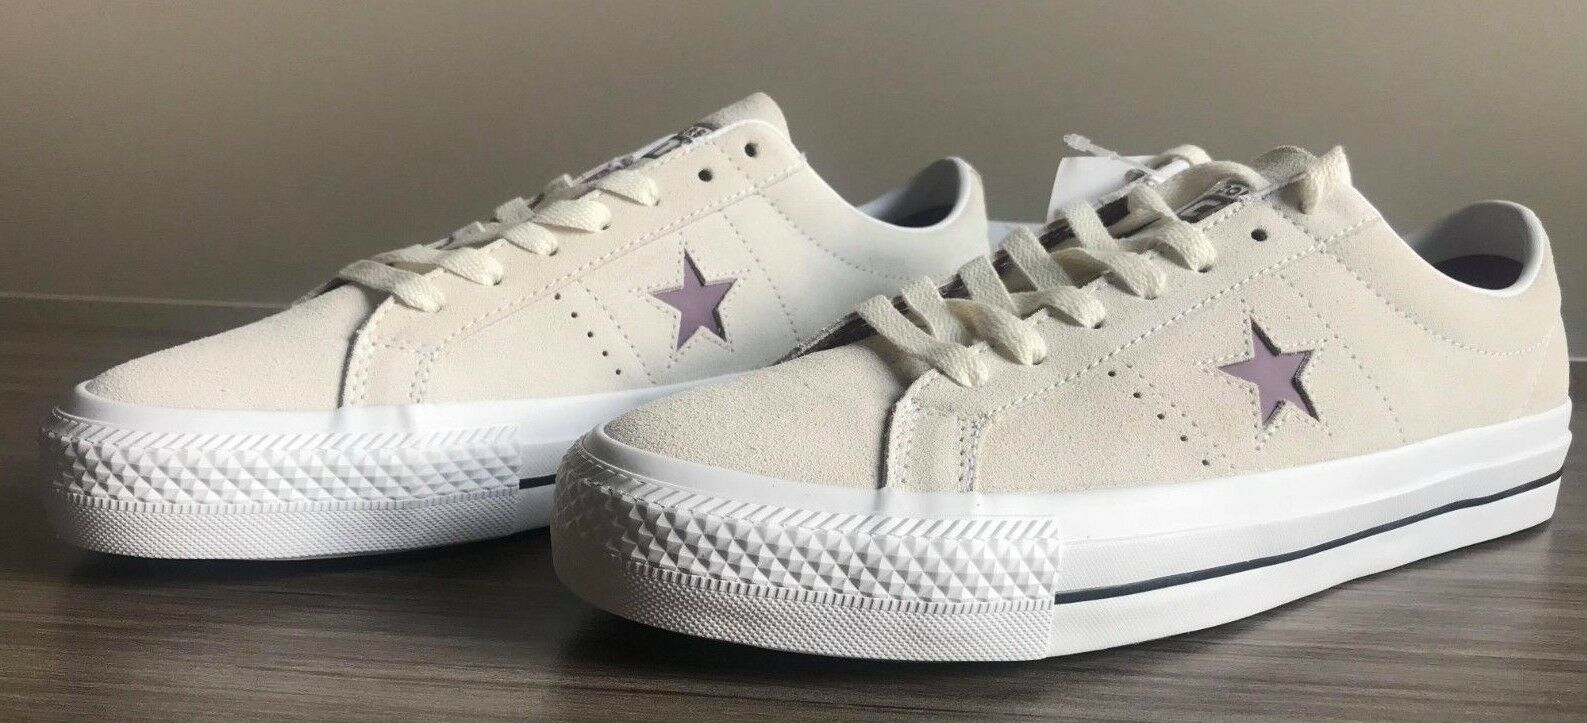 Converse Cons One Star Low Top PRO Oxford SHOES SIZE MEN'S 11.5  75 161525C